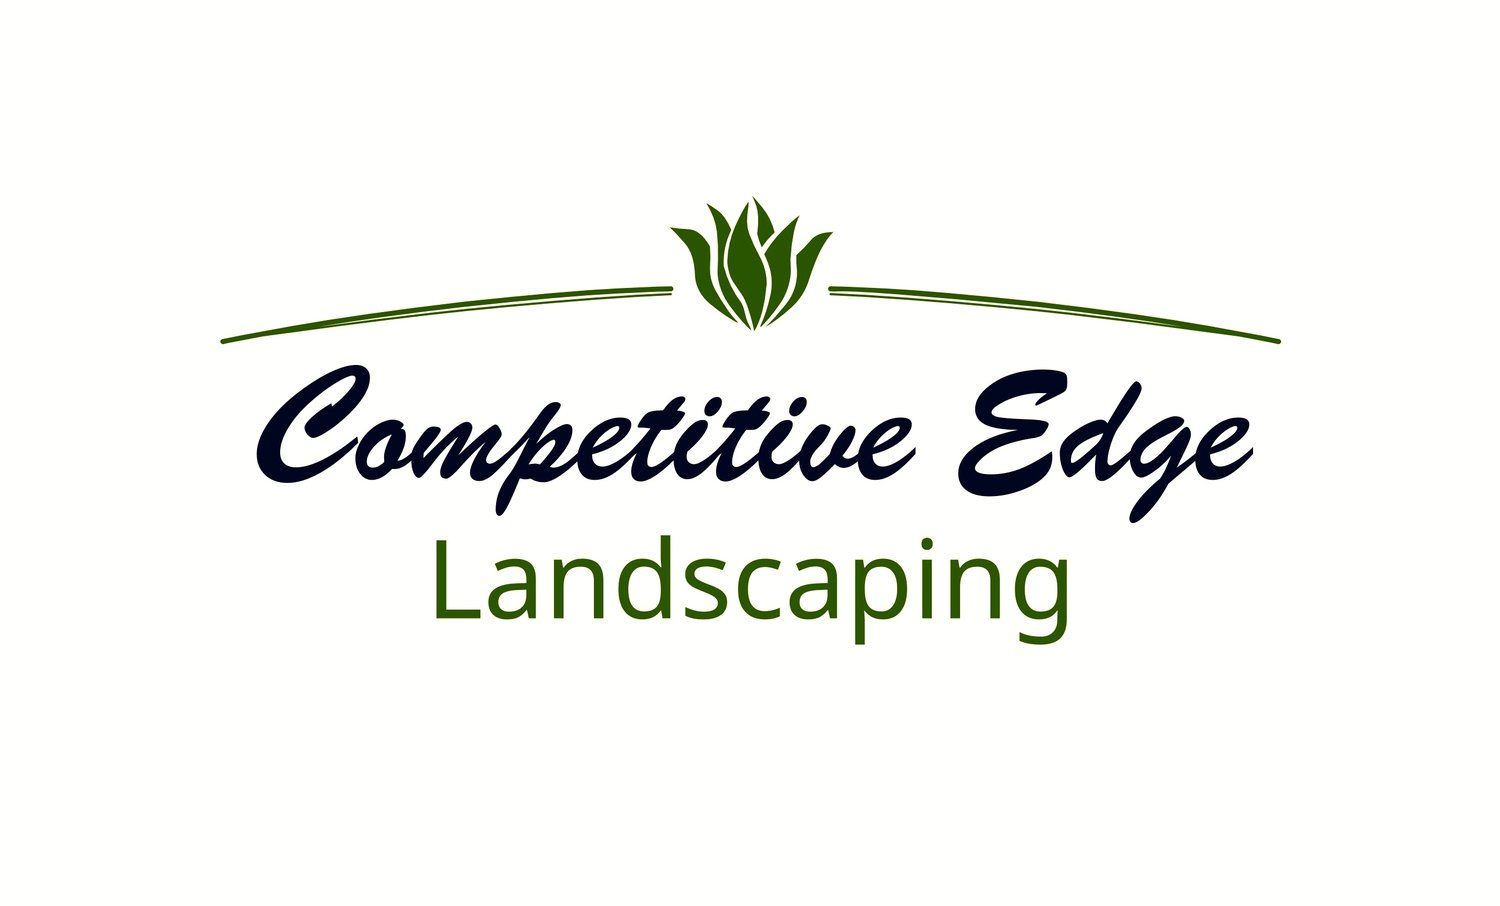 Competitive Edge Landscaping